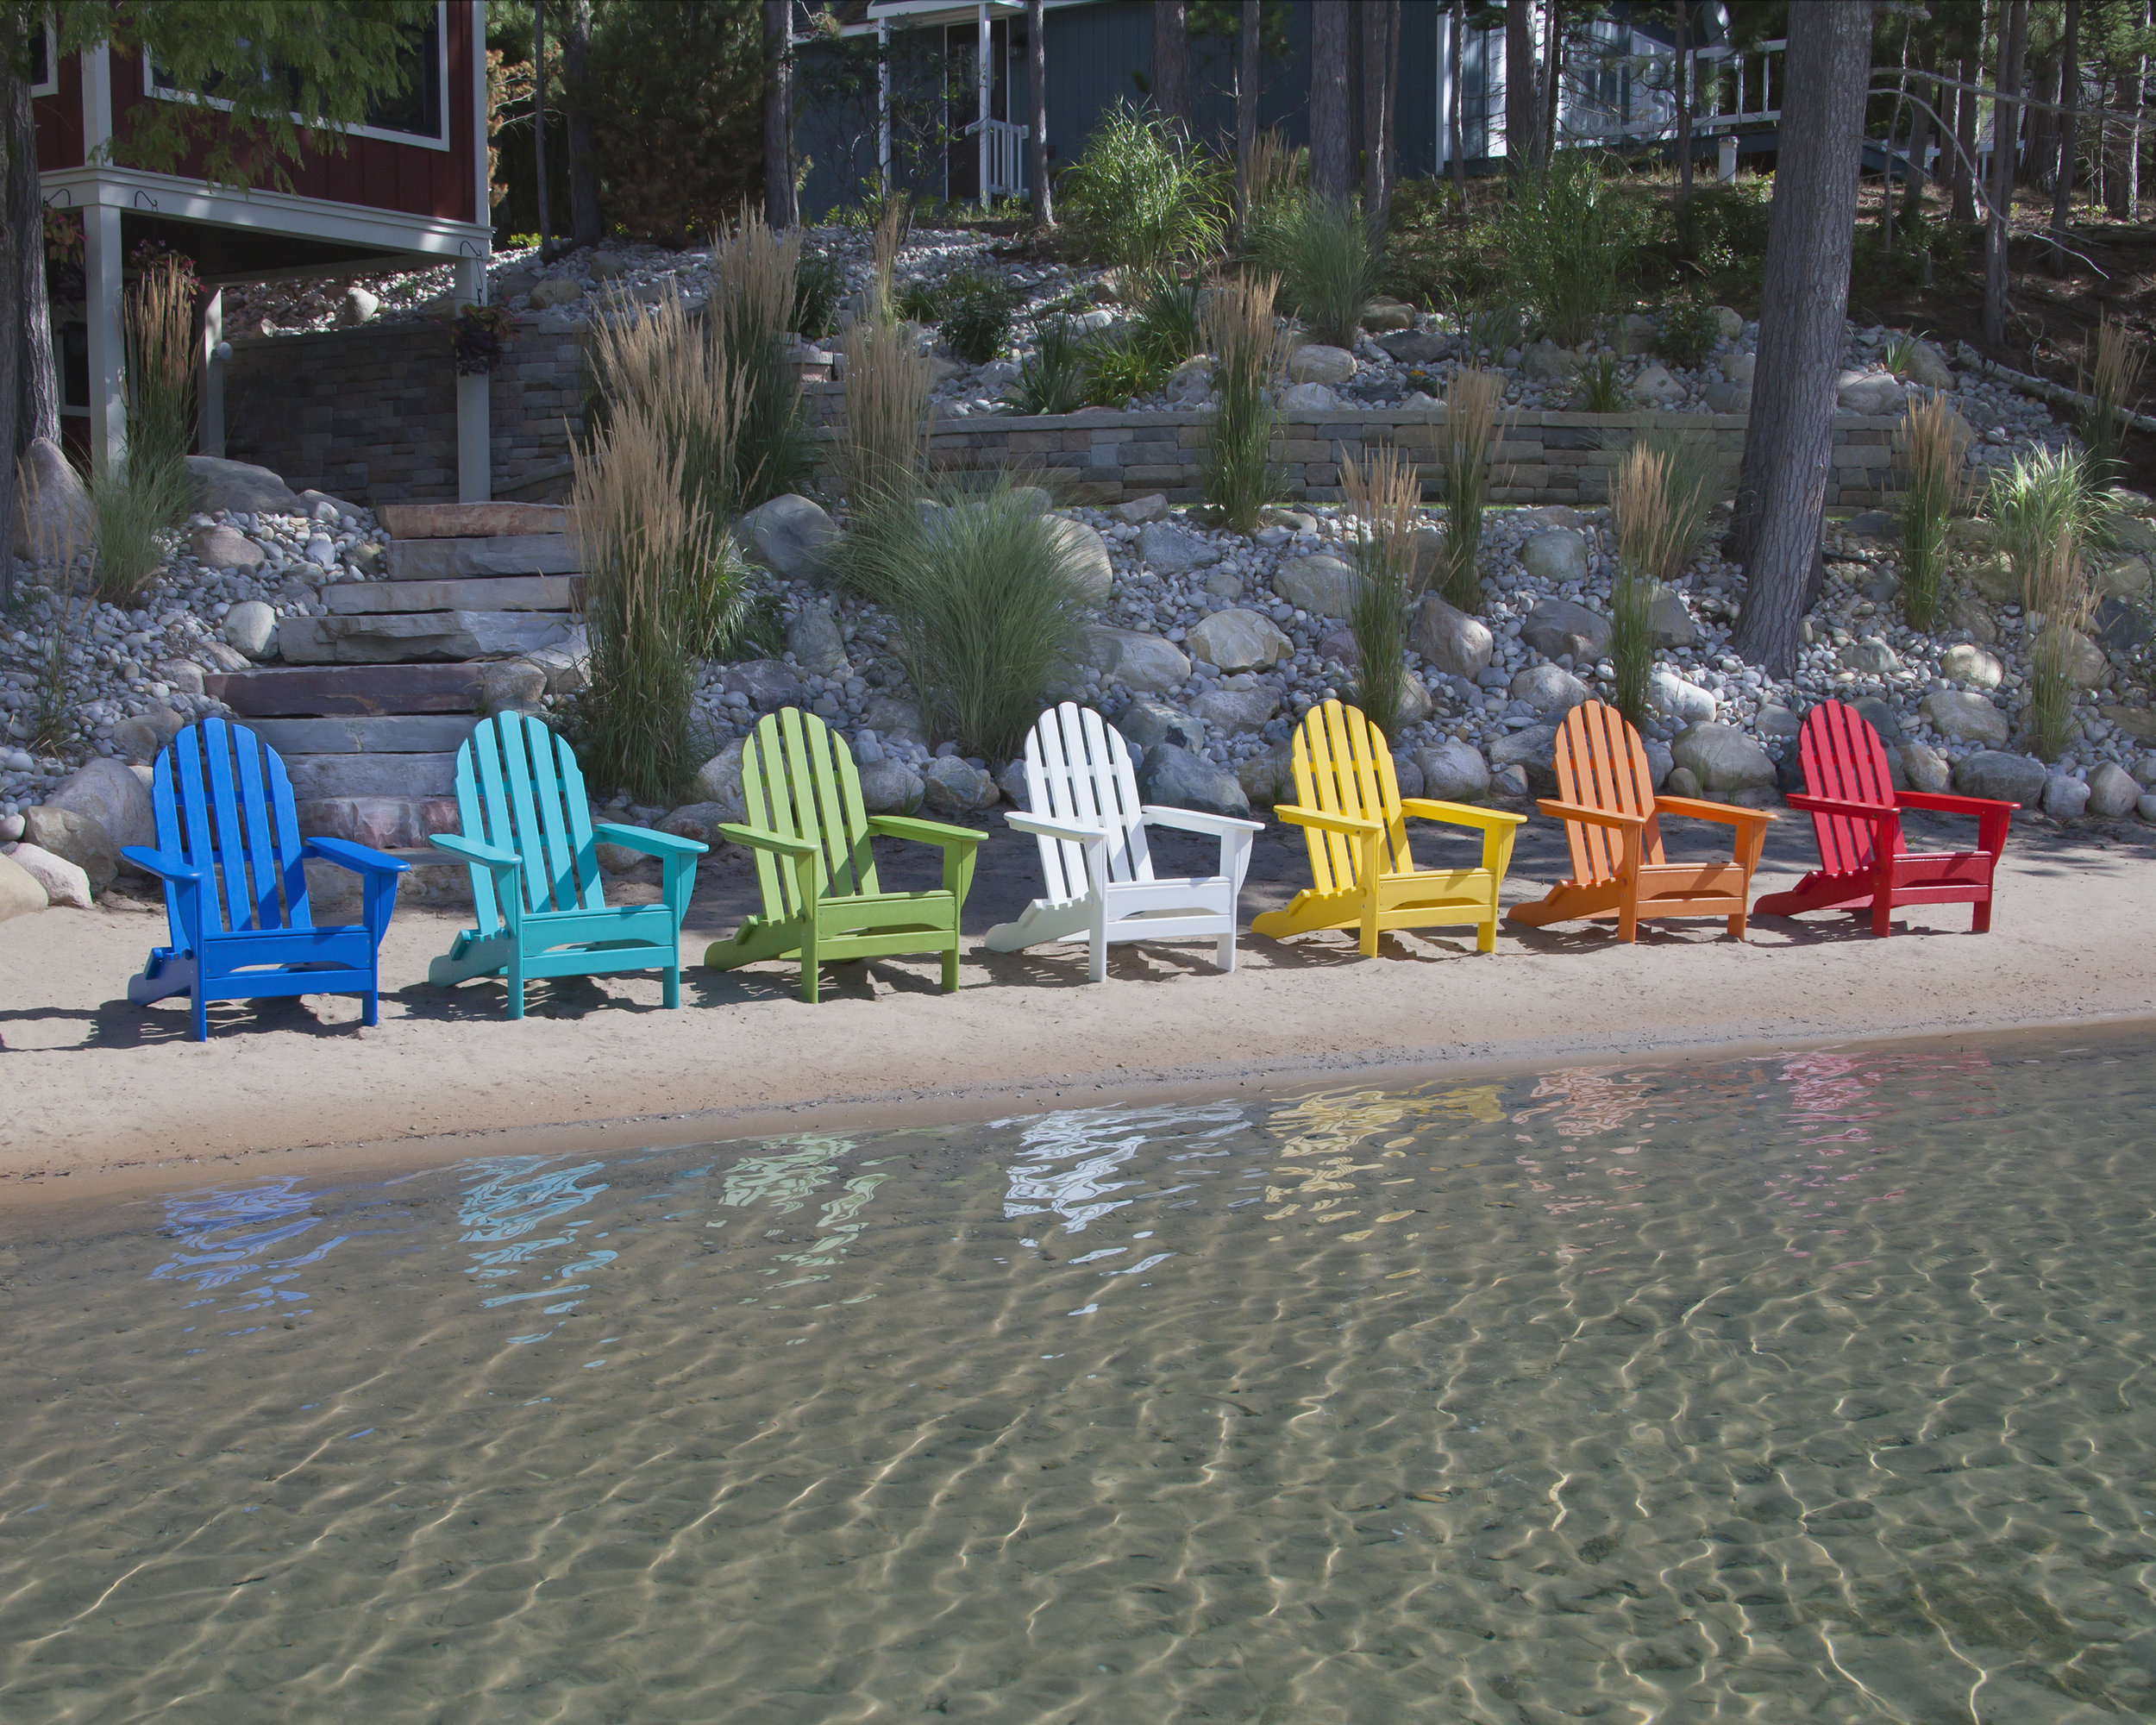 Made from recycled plastic, POLYWOOD has been an eco-friendly outdoor furniture pioneer. Photo: POLYWOOD.